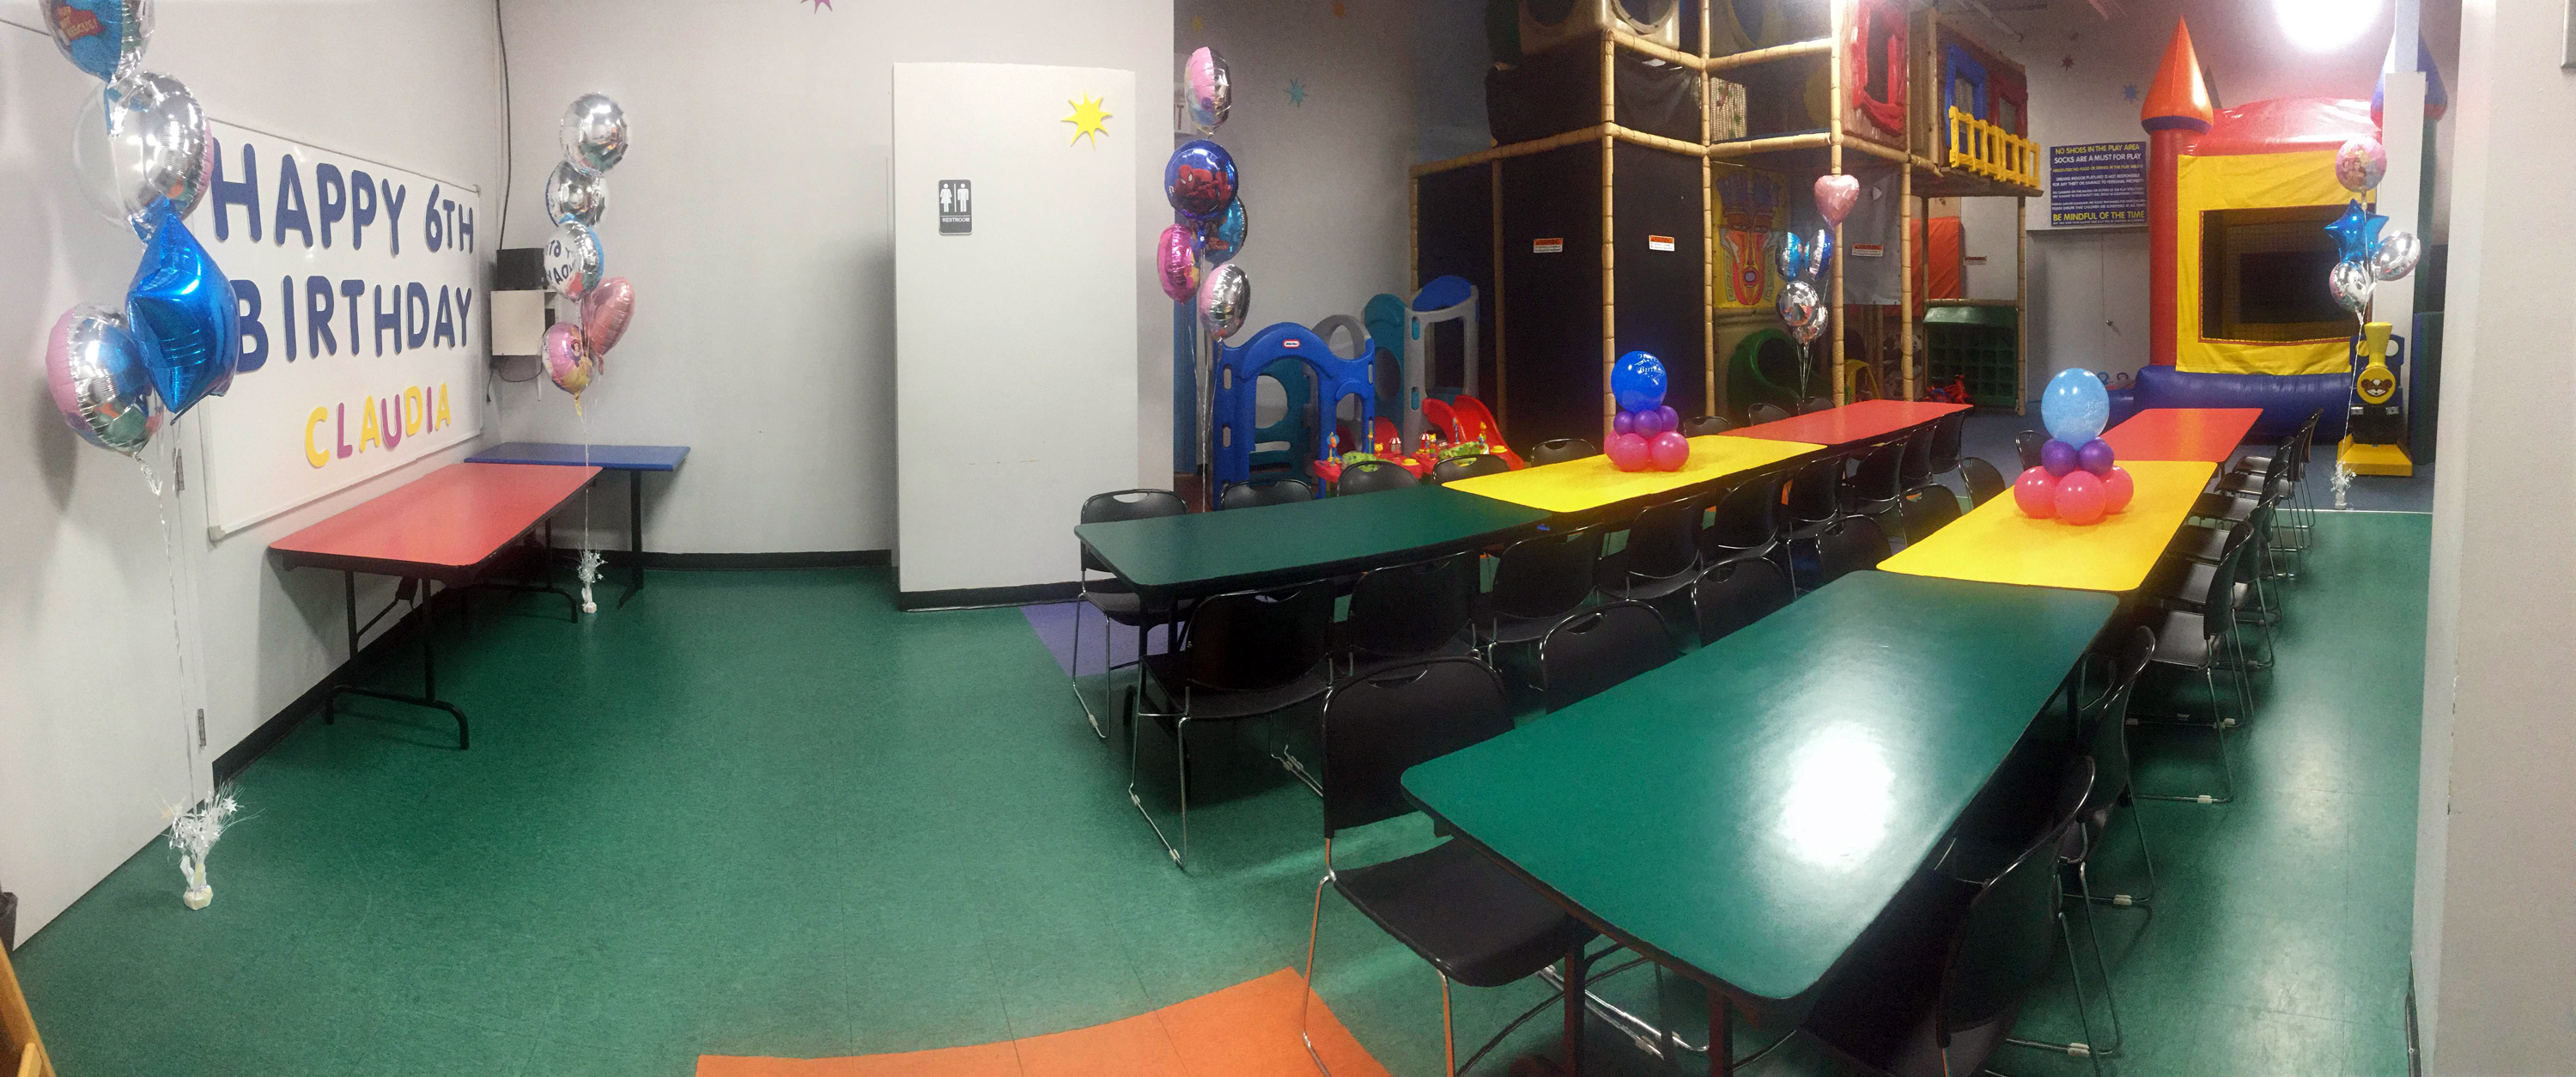 Dream Room Three Details Toronto Indoor Playground Birthday Party